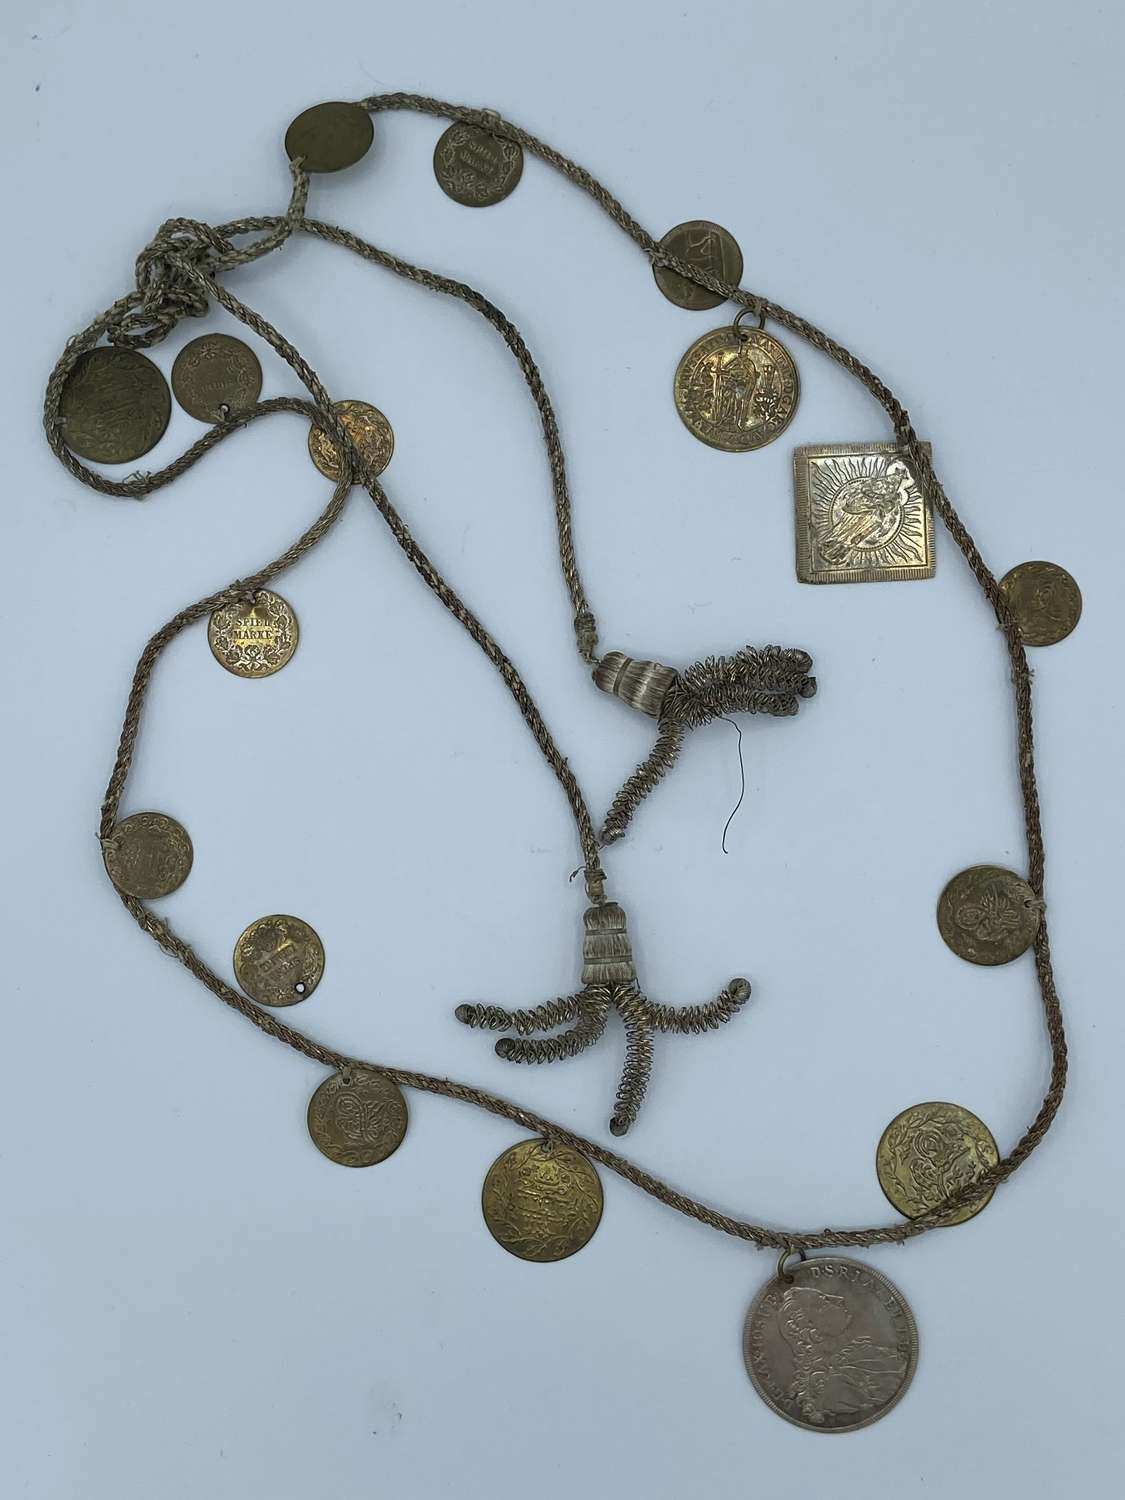 1850s Brass Gambling Spielmarke x 17 Tokens Necklace